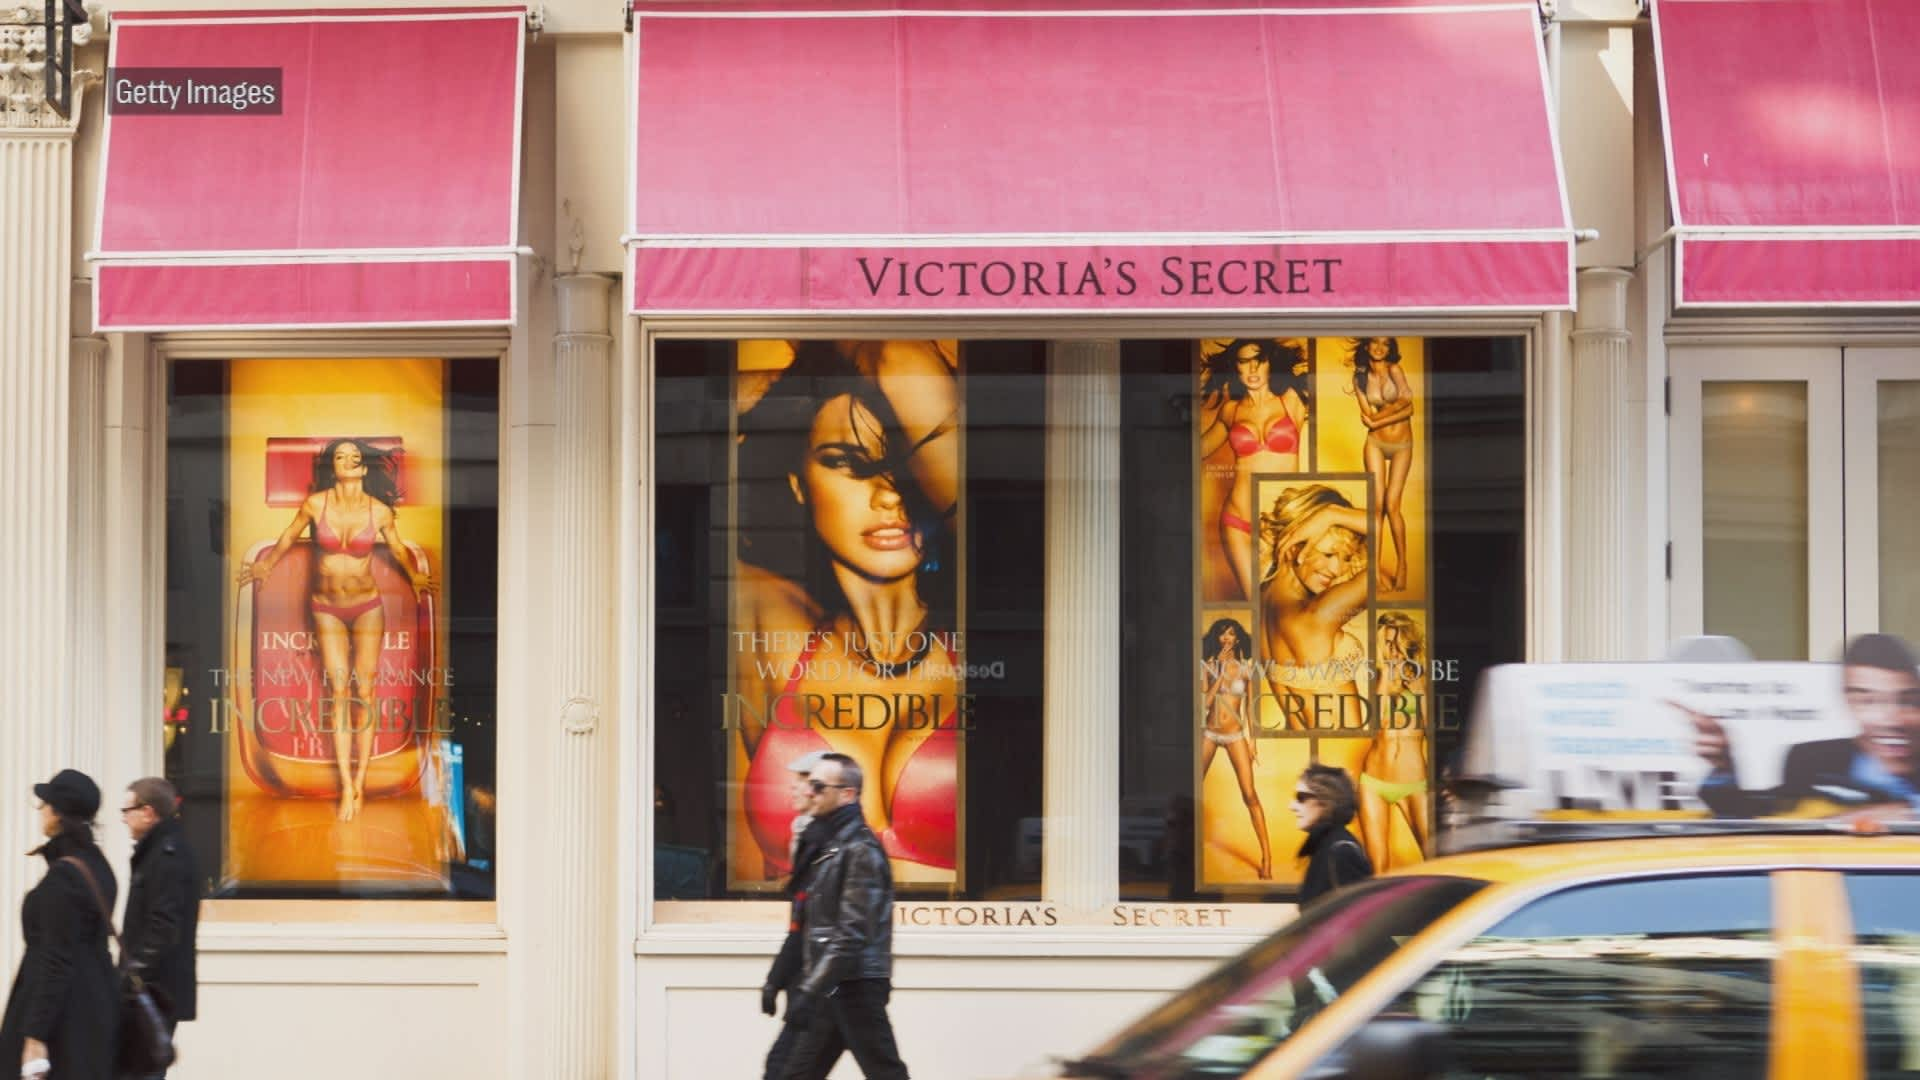 2c8a19c43ebf Victoria's Secret has a plan to upgrade its image for younger women